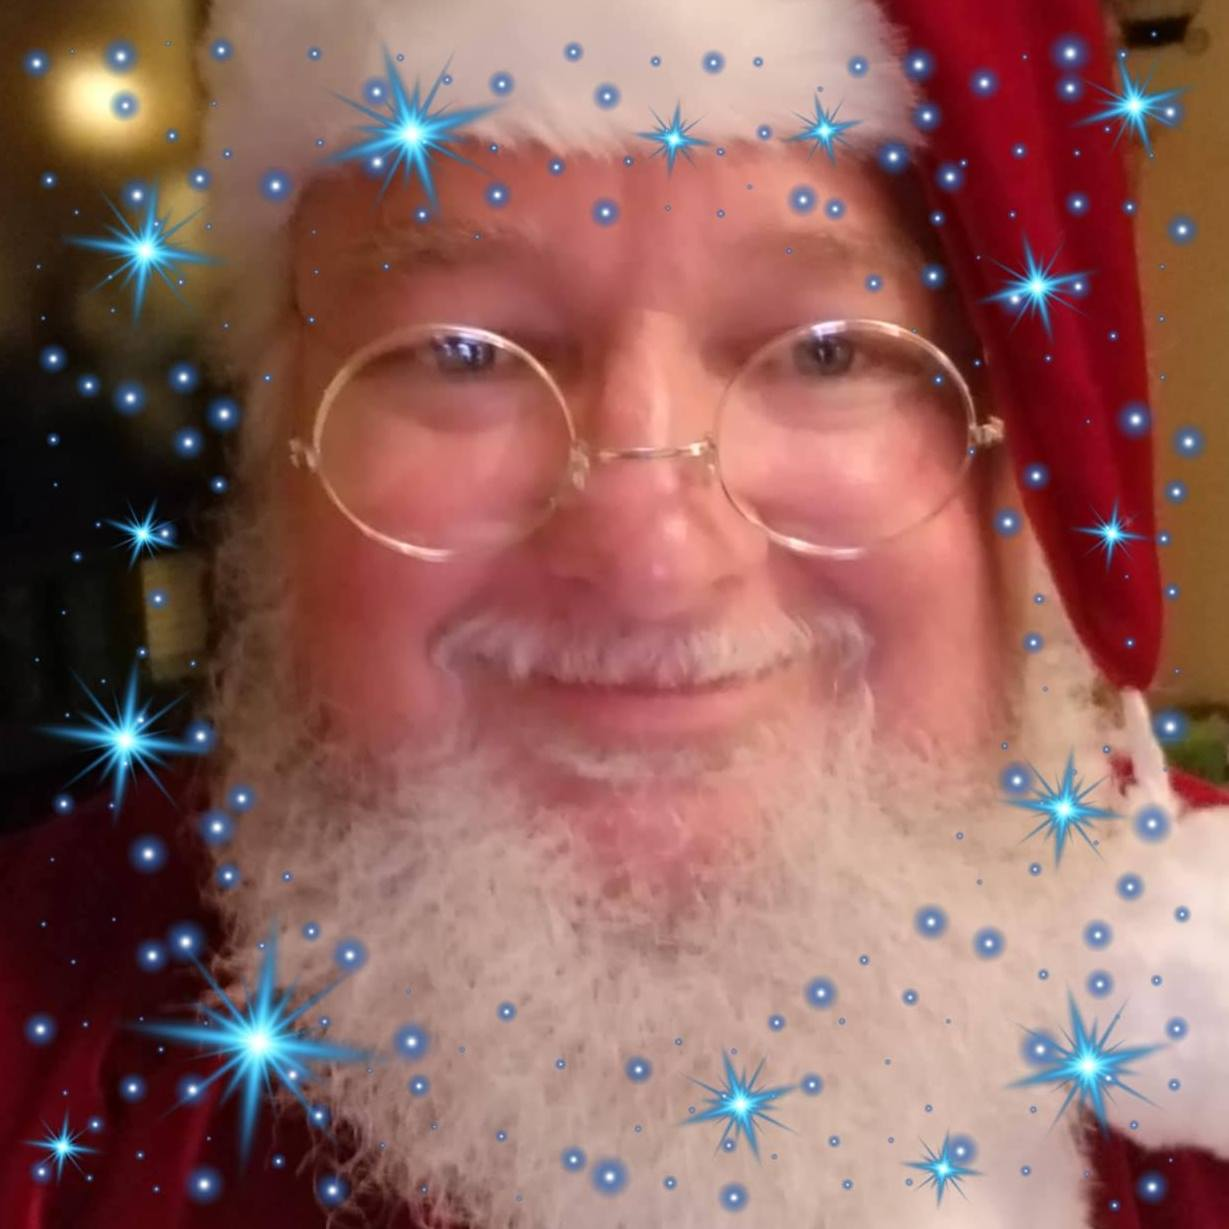 You heard right! Johnson County Democrats have our very own Santa Claus, and he'll be at the December 11 JCDP Social!